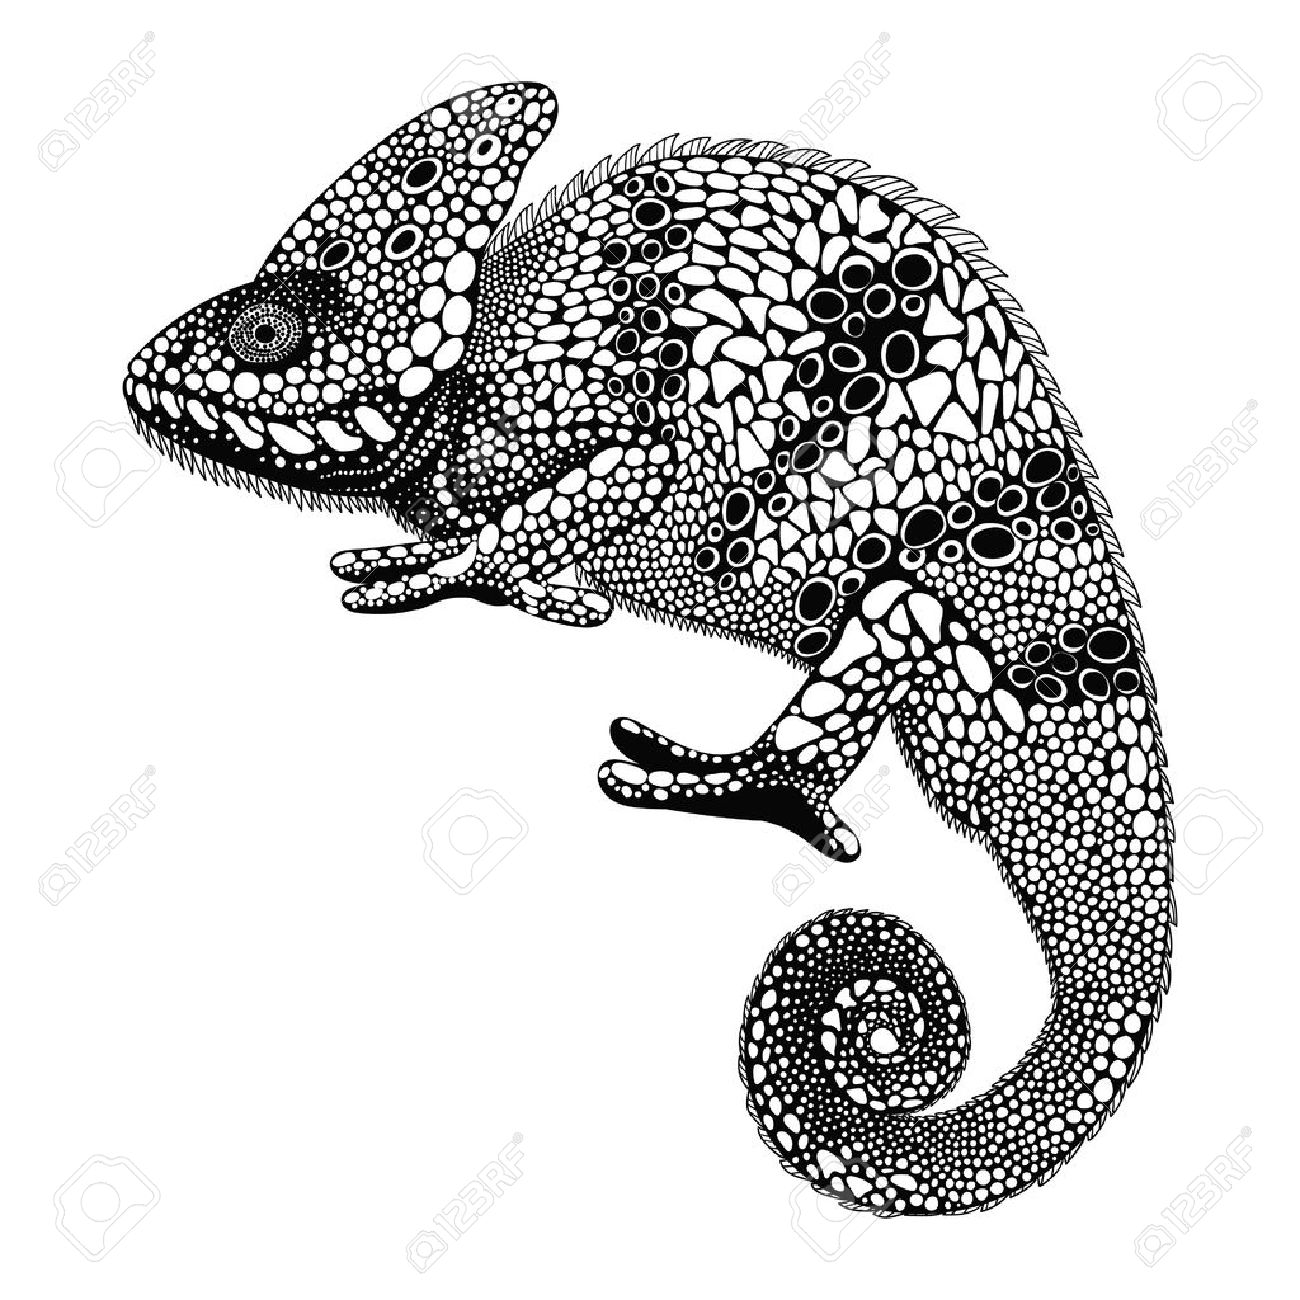 Zentangle Stylized Chameleon Hand Drawn Reptile Vector Illustration In Doodle Style Sketch For Tattoo